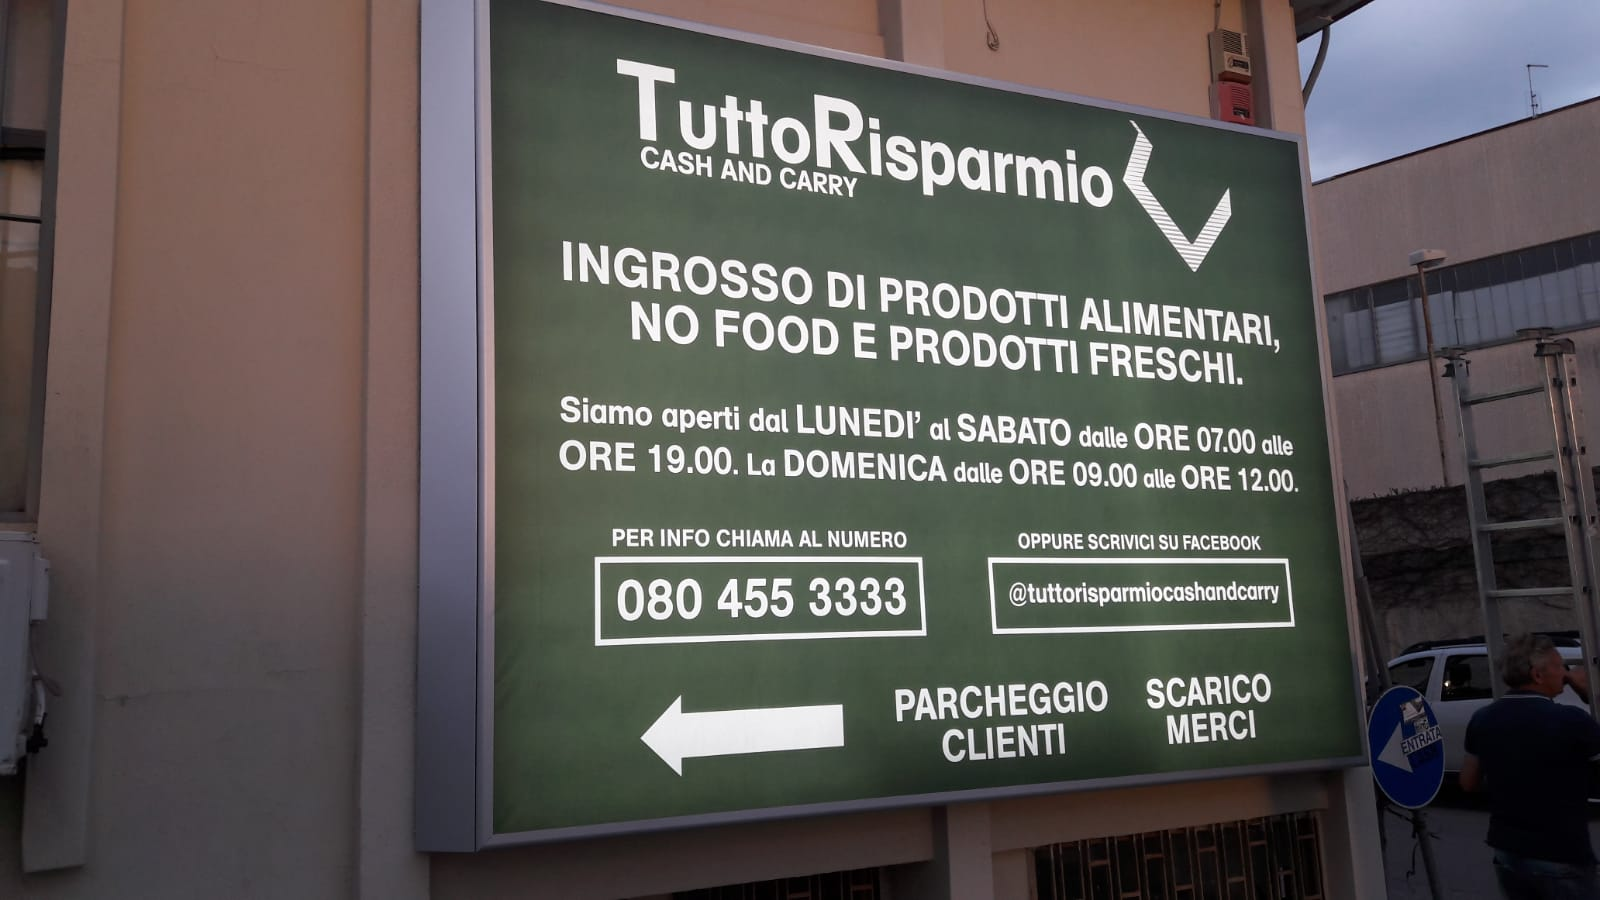 APULIA DISTRIBUZIONE – CASH AND CARRY